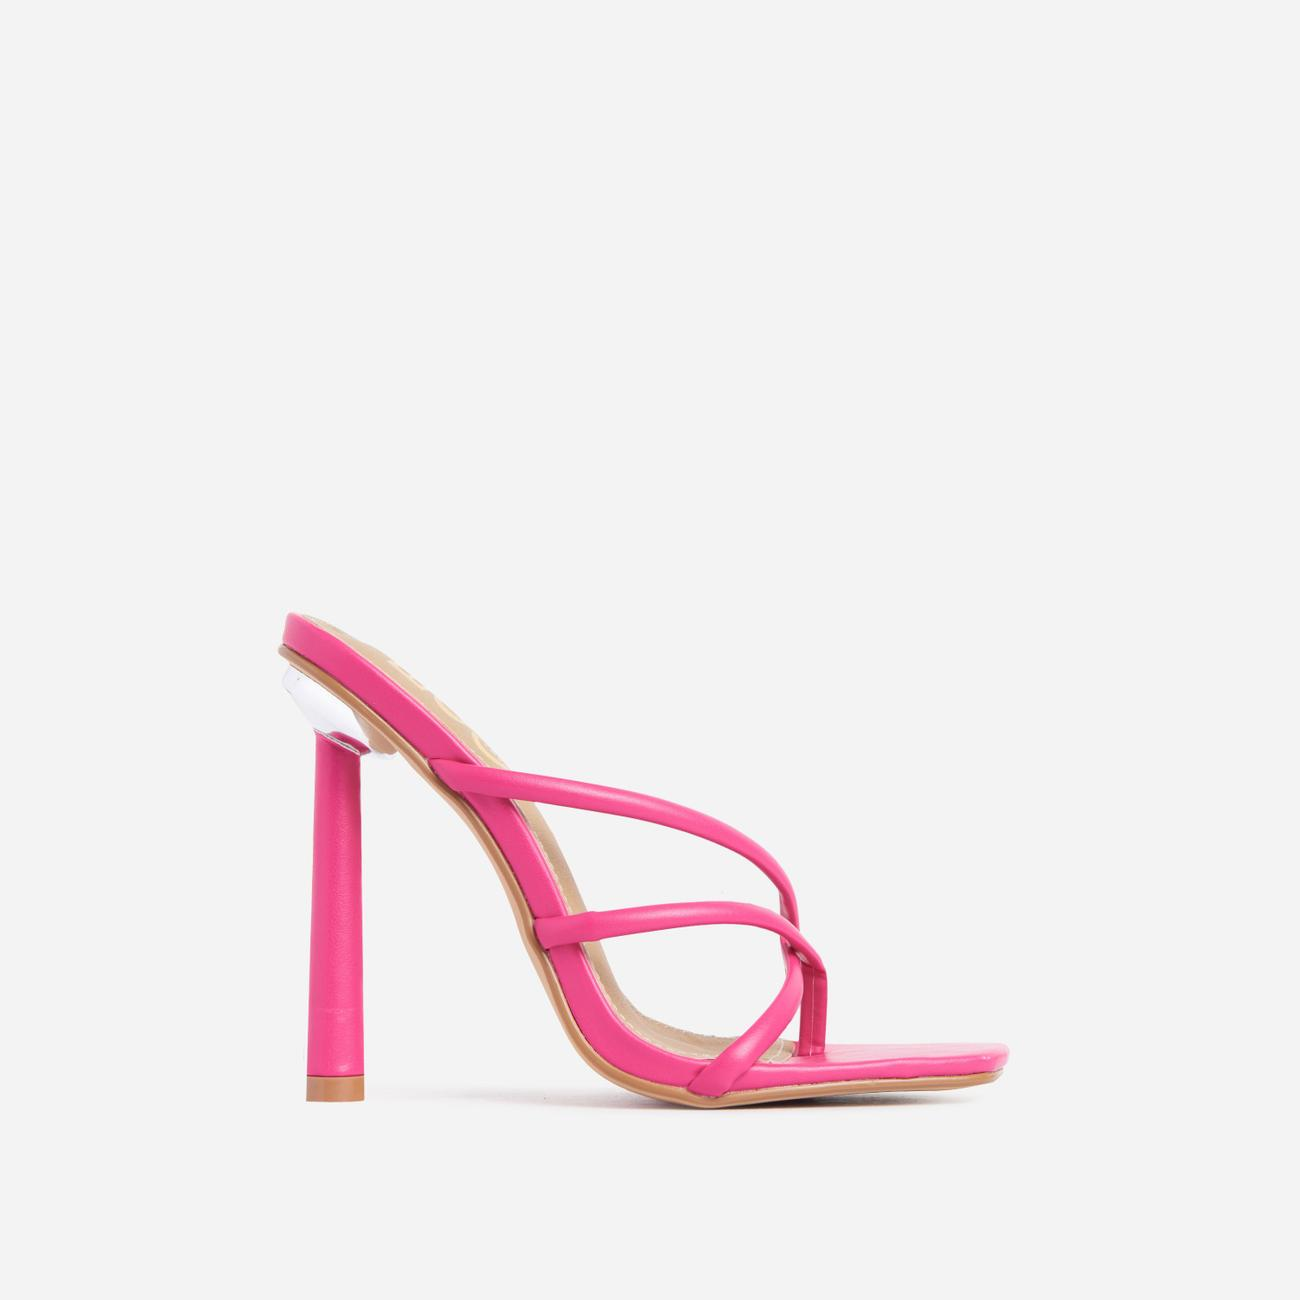 Playa Strappy Square Toe Heel Mule In Pink Faux Leather Image 1